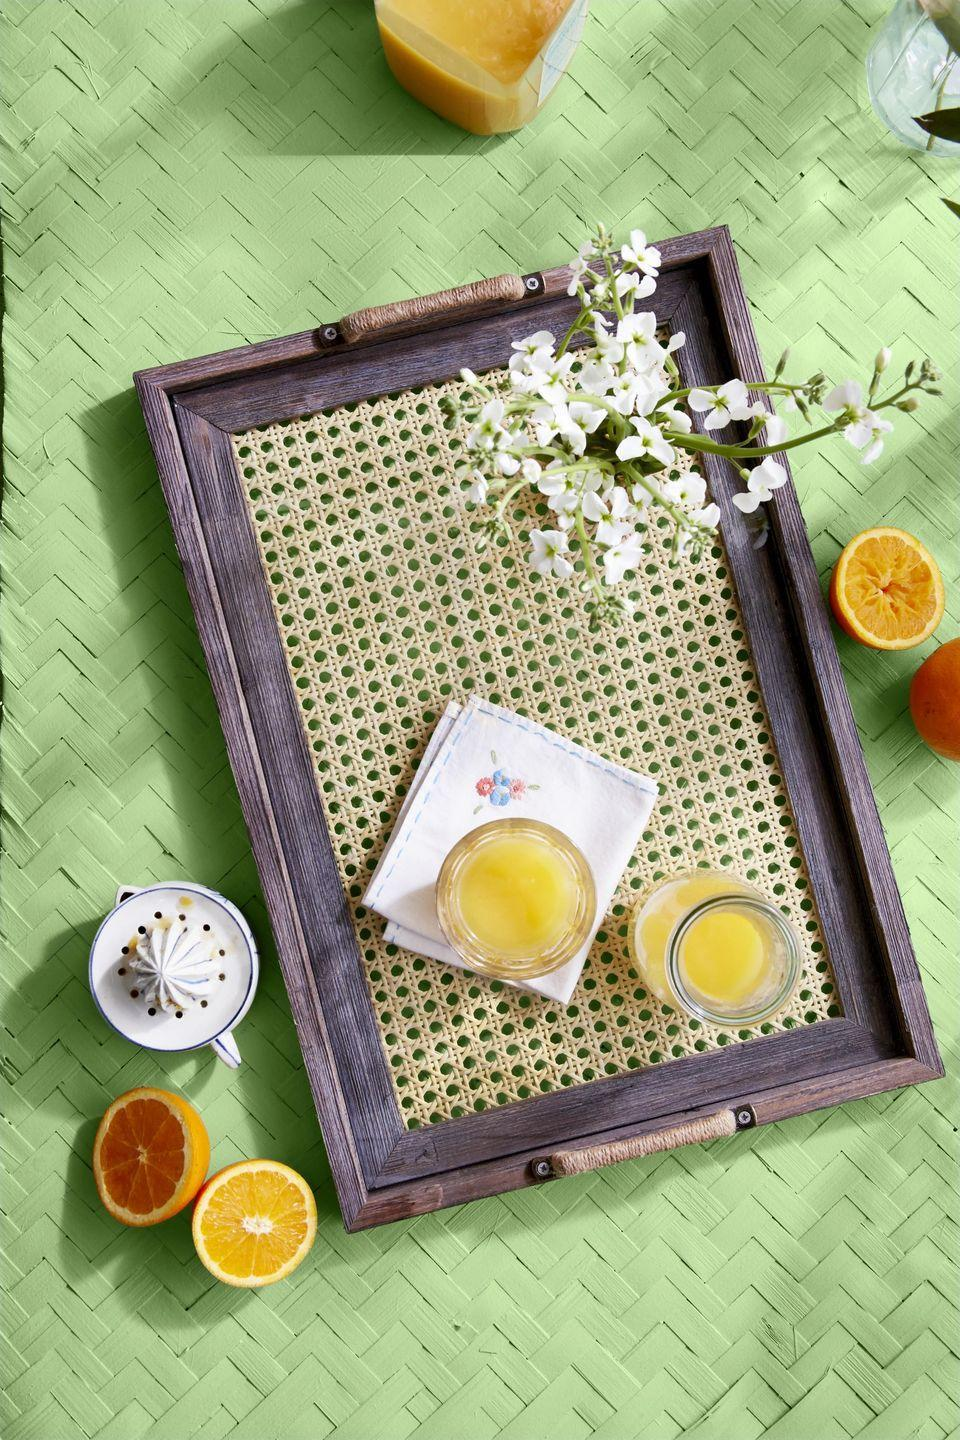 """<p>Breakfast in bed (yes, that should still be a thing) just got a whole lot prettier when served on a DIY tray that's been decked out with cane webbing.<strong><br><br>To make:</strong> Insert a piece of caning that is the same size as the opening of a picture frame (here, a 16-by-20- inch frame by <a href=""""https://www.amazon.com/BarnwoodUSA-Rustic-Farmhouse-Signature-Picture/dp/B01ELNZLPK/ref=sr_1_5"""" rel=""""nofollow noopener"""" target=""""_blank"""" data-ylk=""""slk:Barnwood-USA, $45; amazon.com)"""" class=""""link rapid-noclick-resp"""">Barnwood-USA, $45; <em>amazon.com</em>)</a>. Hold in place with craft glue or glazing points. Attach three-inch cabinet-style handles (wrapped with twine, if desired) to the short ends of the frame. Insert a piece of glass that covers the full opening, if desired.</p>"""